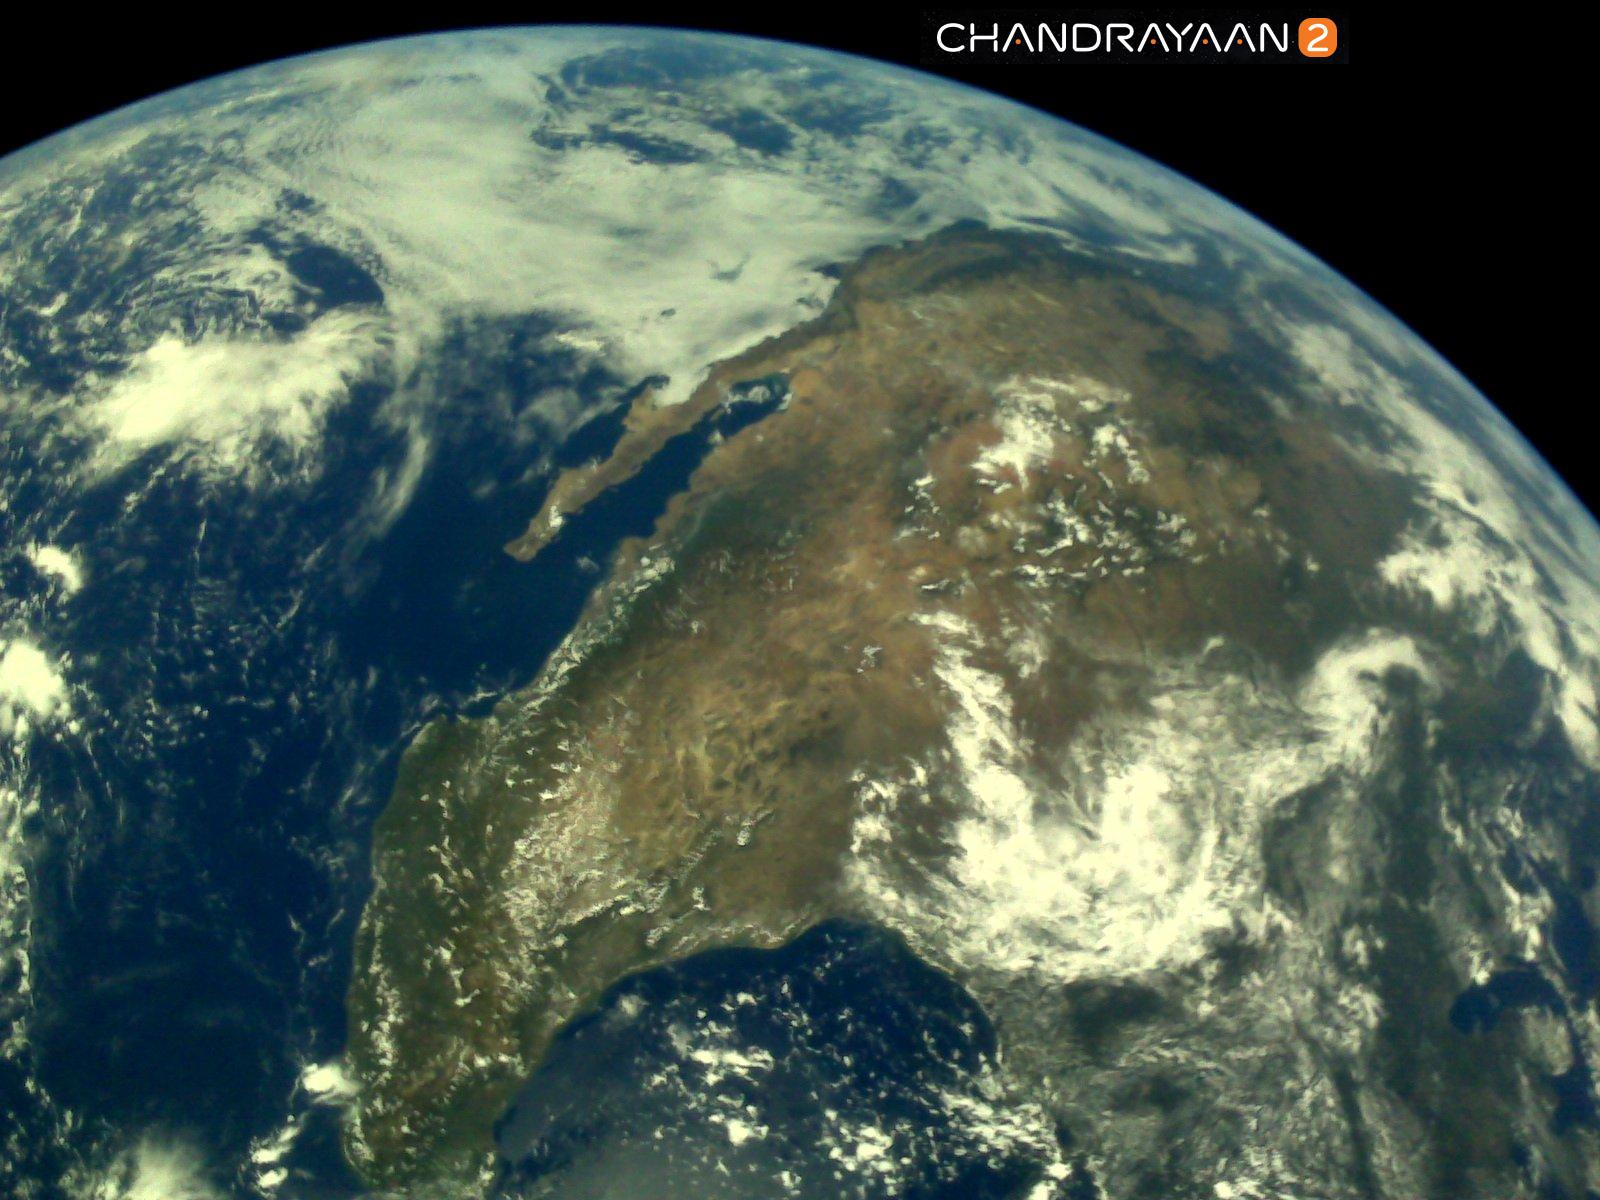 Isro released the first set of pictures of Earth captured by Chandrayaan-2 Vikram Lander earlier this month. (Image source: ISRO twitter)